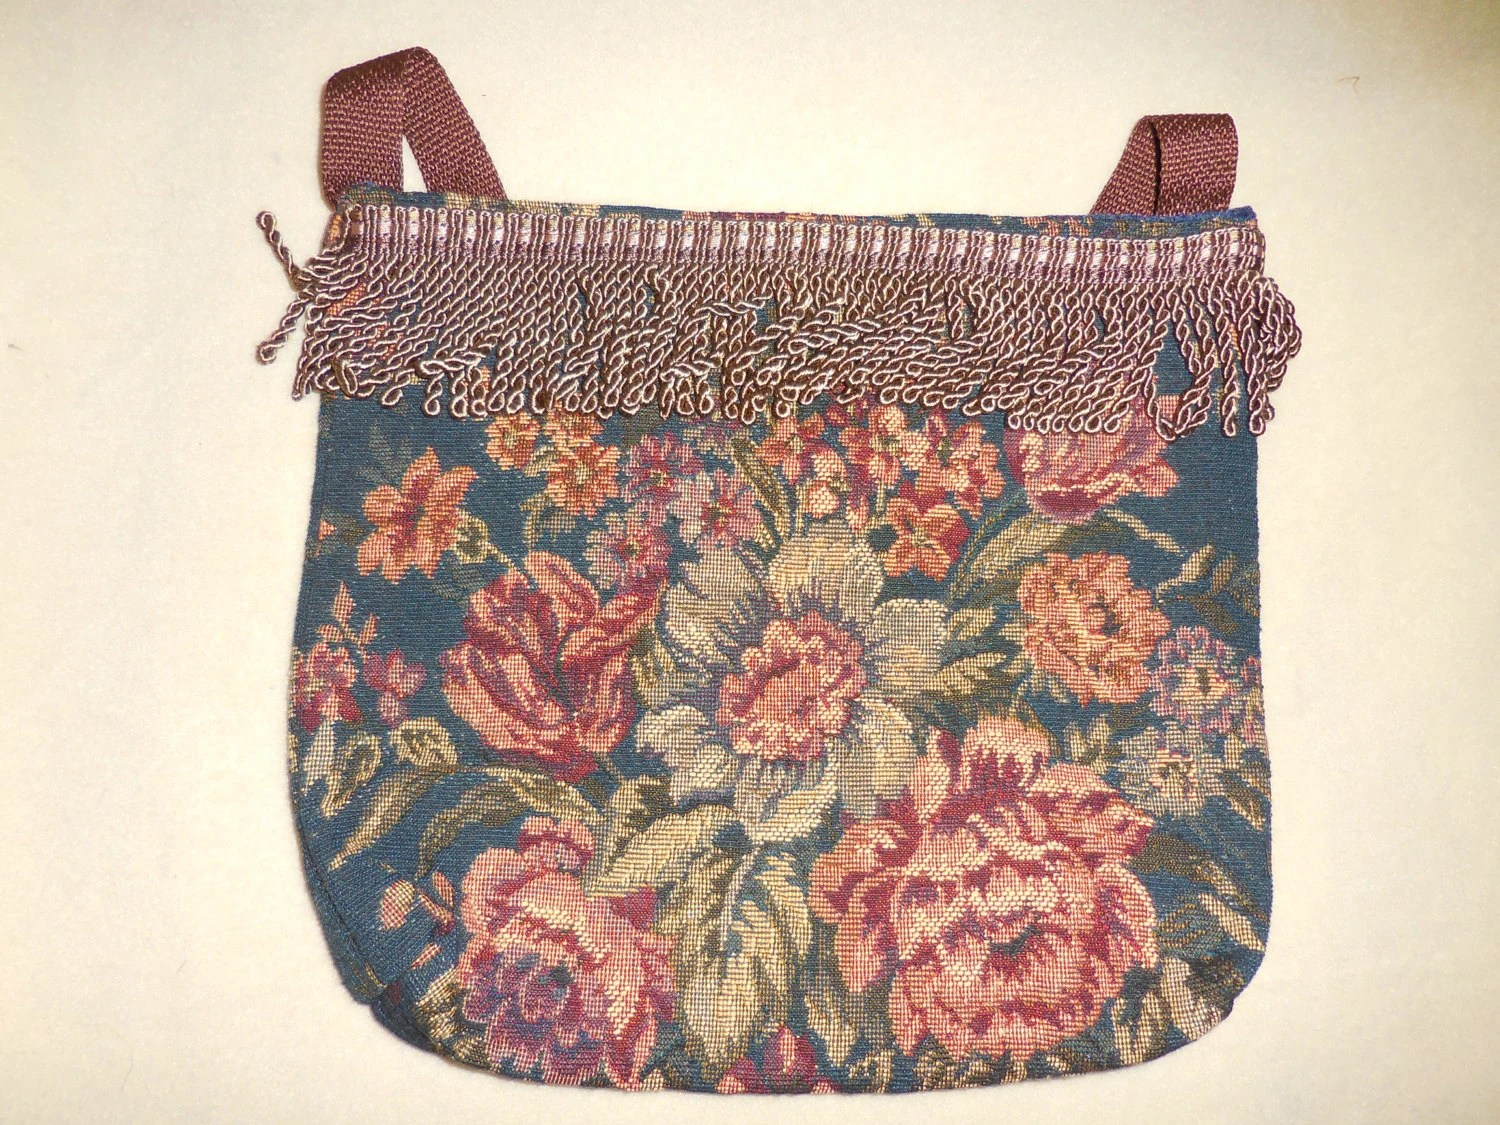 Items similar to Handmade Leather Purse with Flower Design